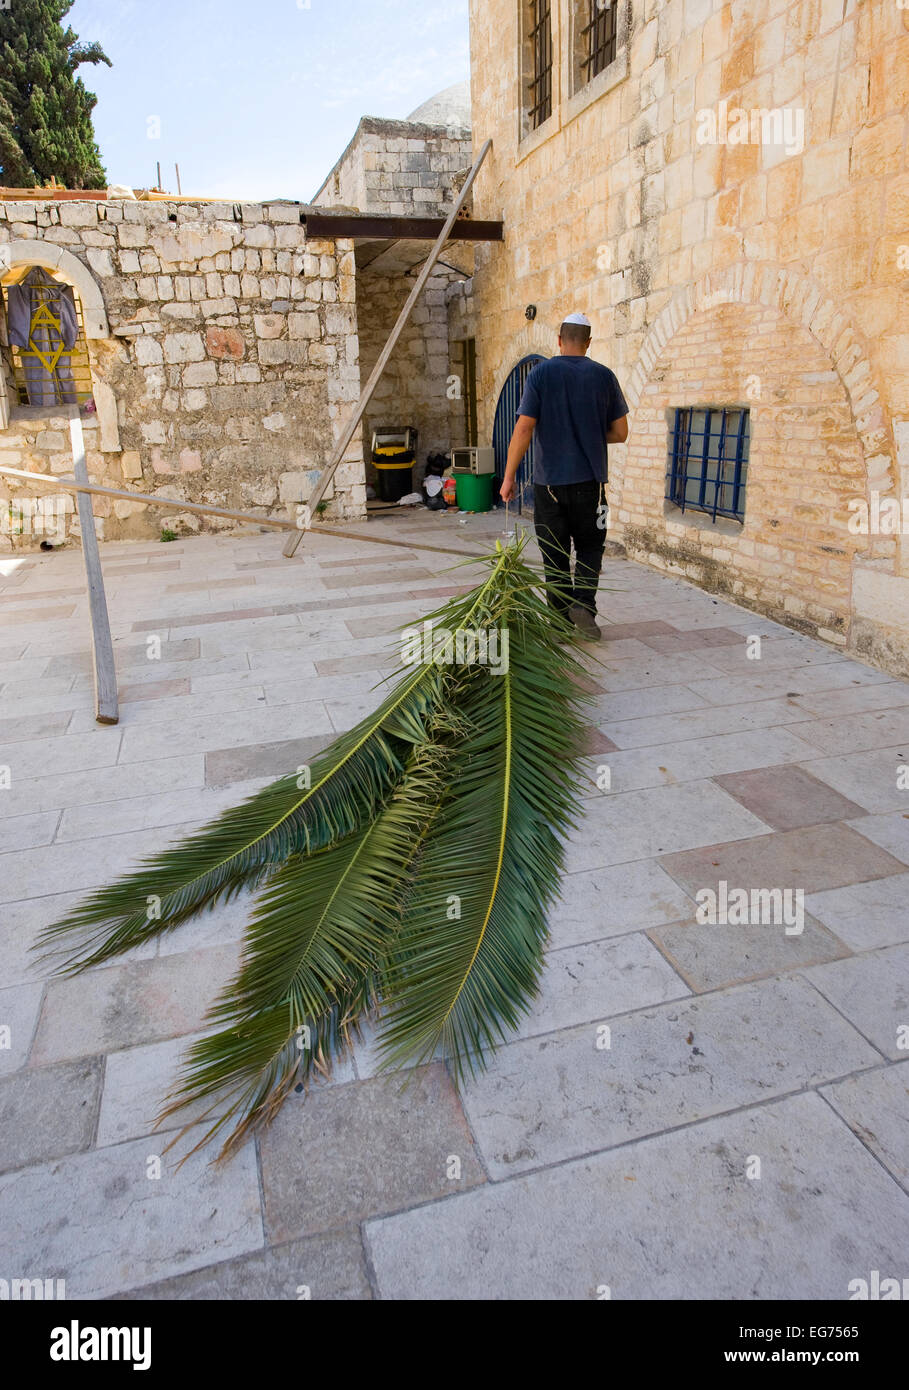 A jewish man is pulling palm leaves with him to prepare for the 'feast of tabernacles' - Stock Image